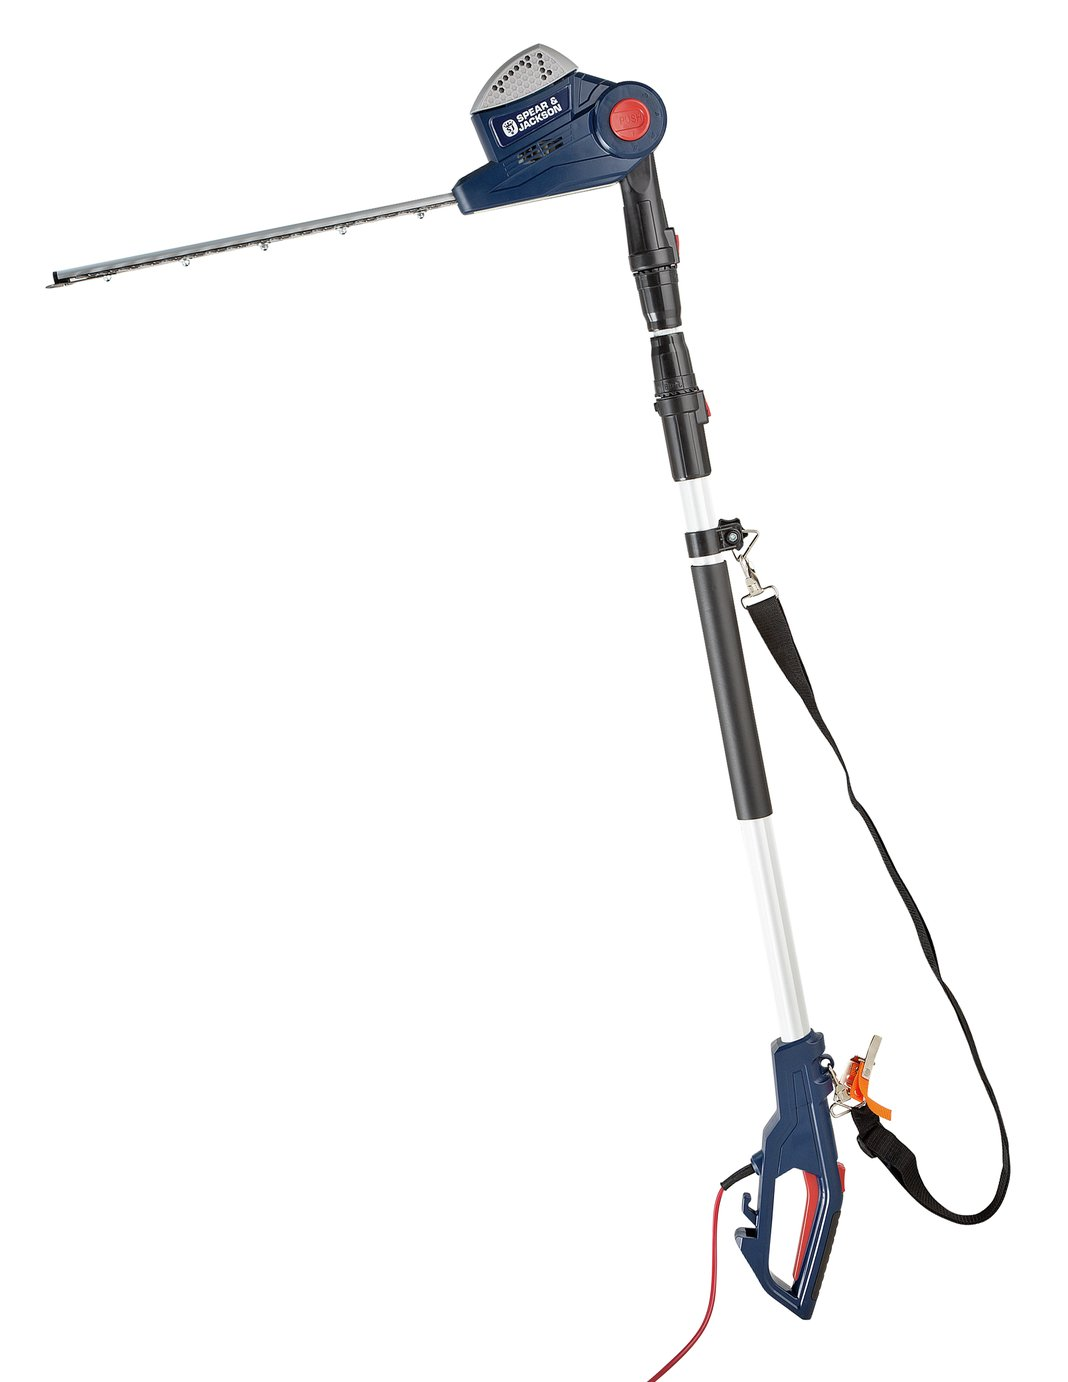 Spear & Jackson Pole Hedge Trimmer - 550W